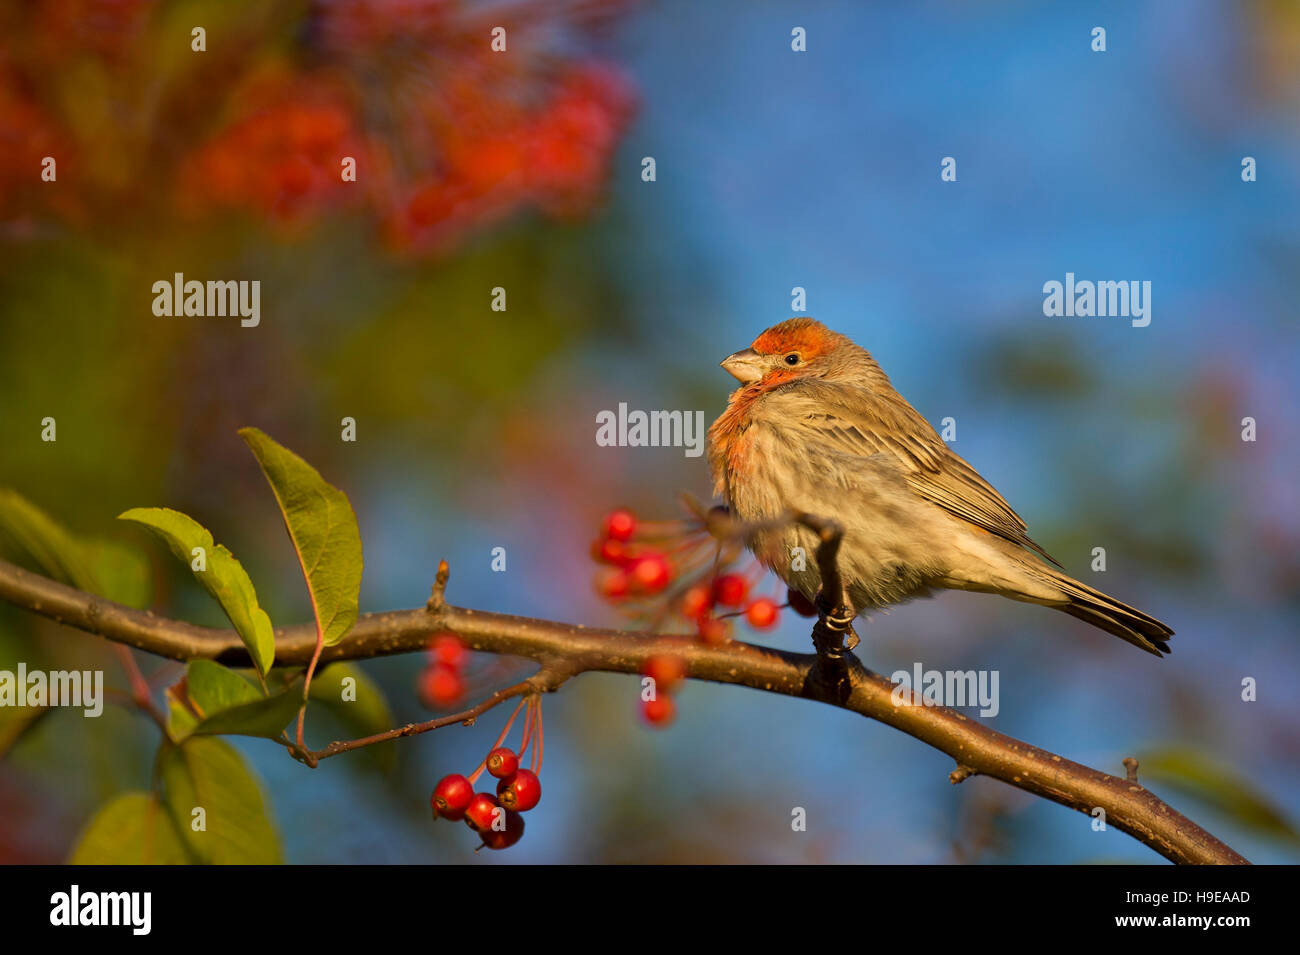 A male House Finch sits perched on a branch full of red berries as the early morning sun shines on him. - Stock Image